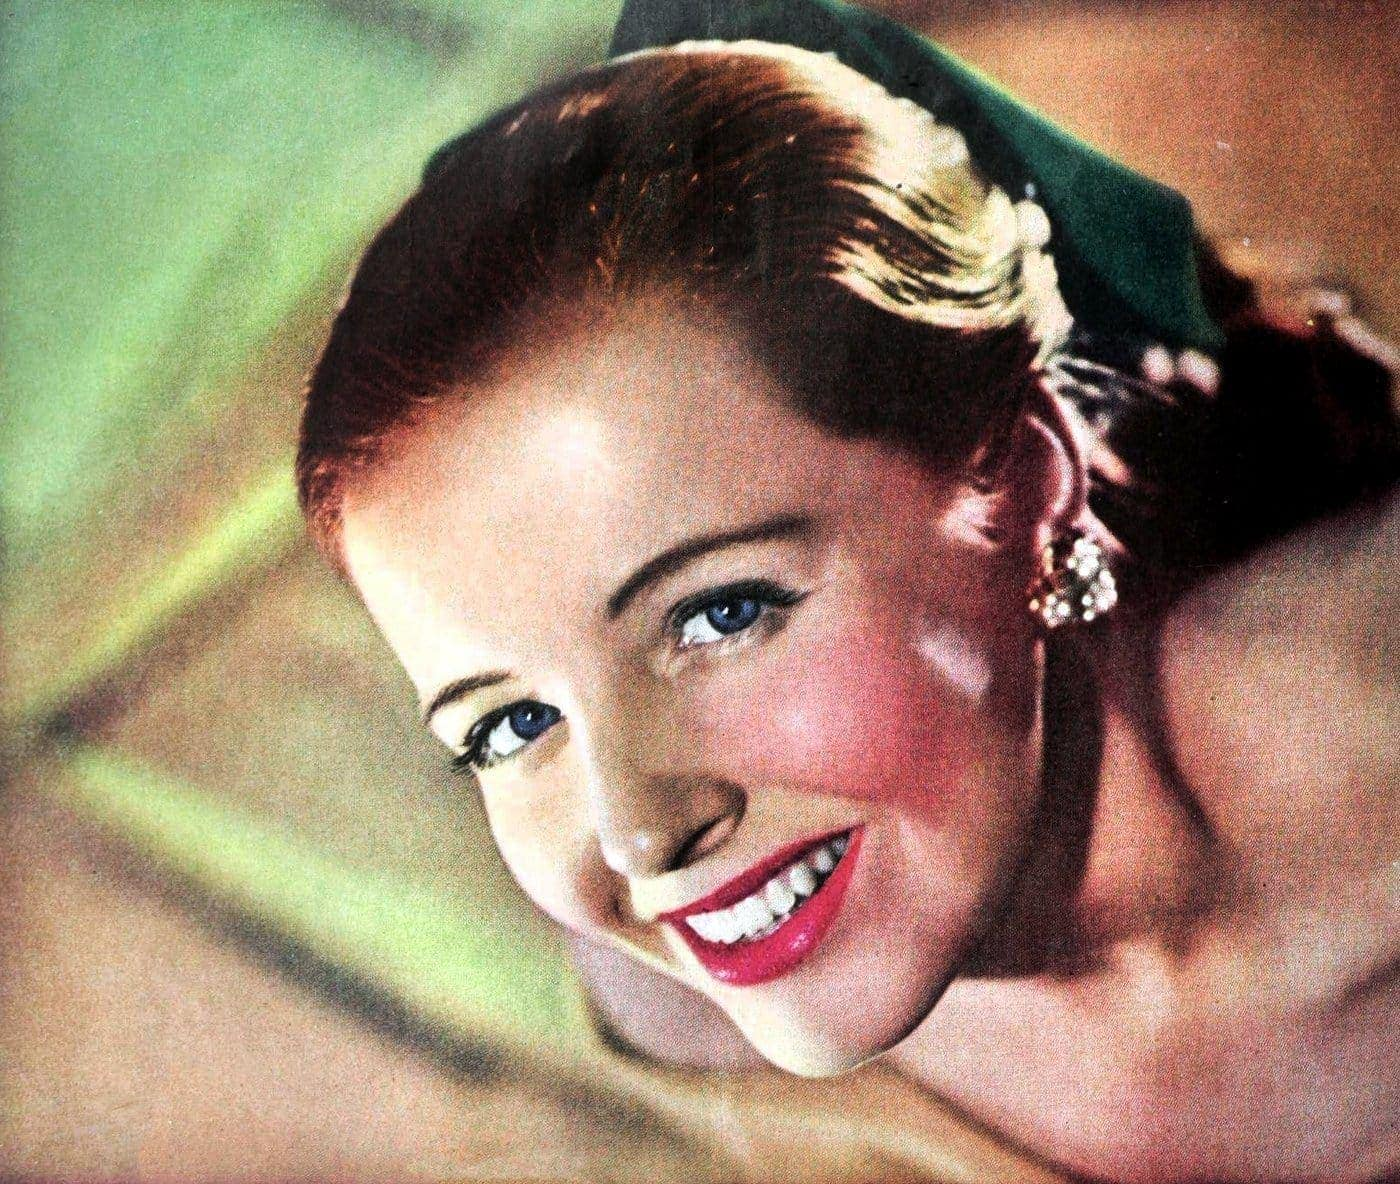 Beauty and makeup for the 1940s woman (2)